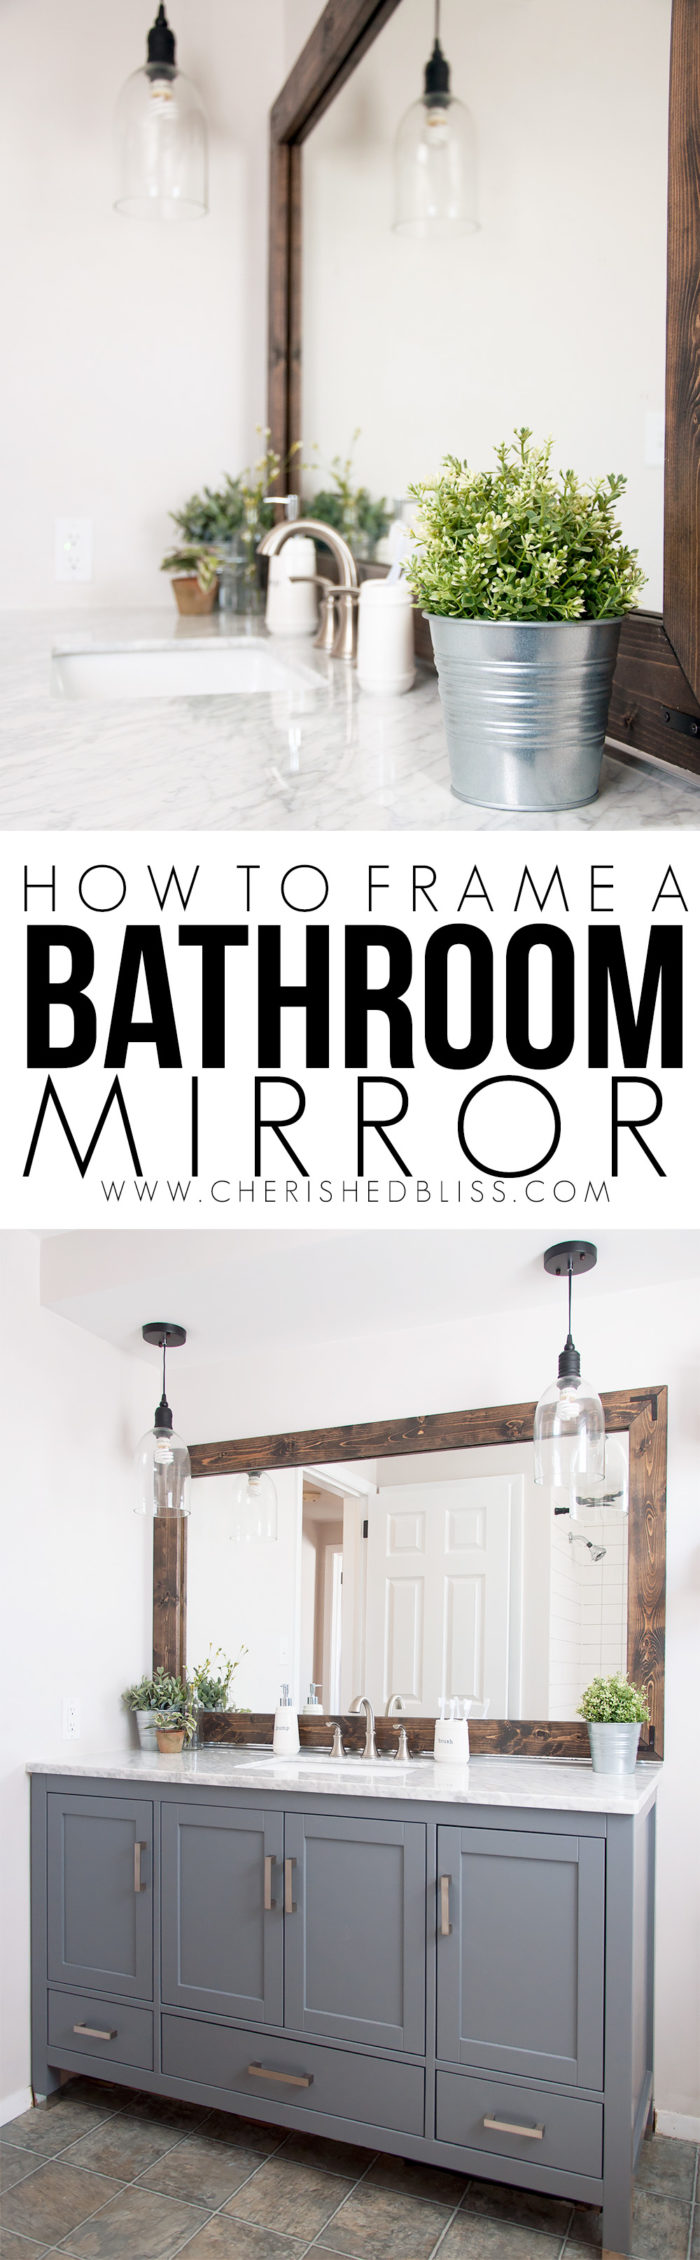 How To Frame Pictures How To Frame A Bathroom Mirror Cherished Bliss